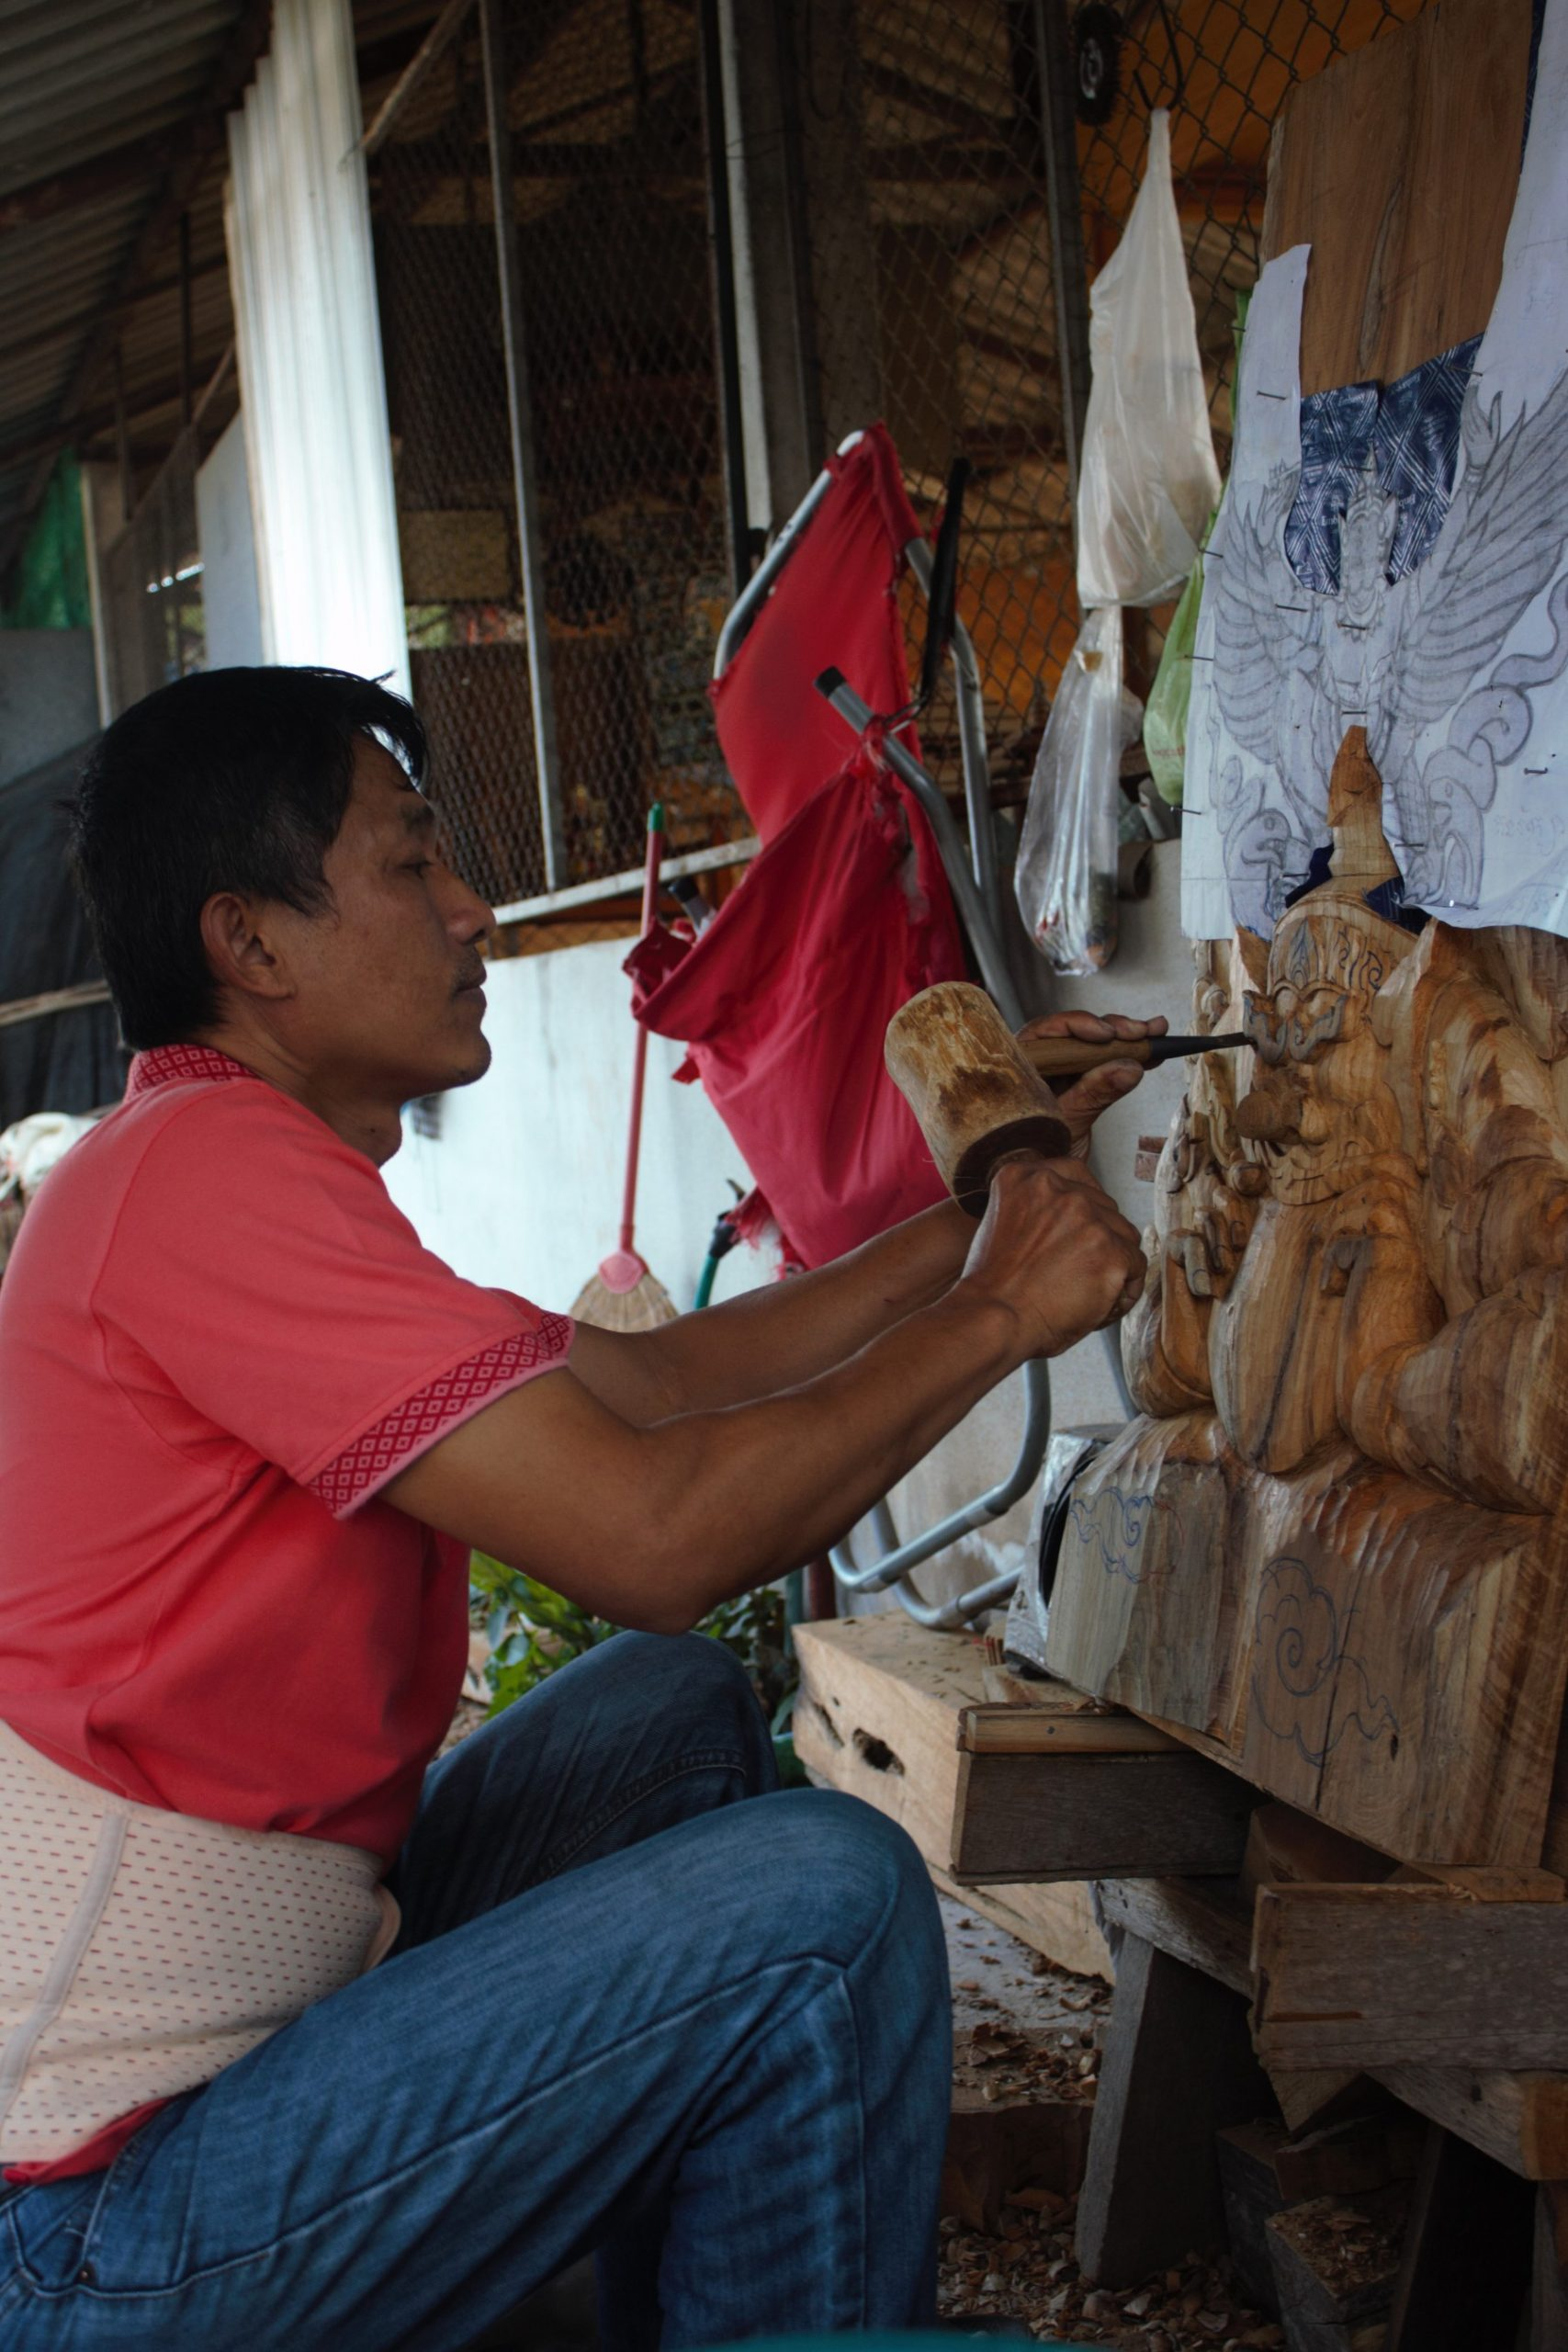 an artisan at work with wood crafts